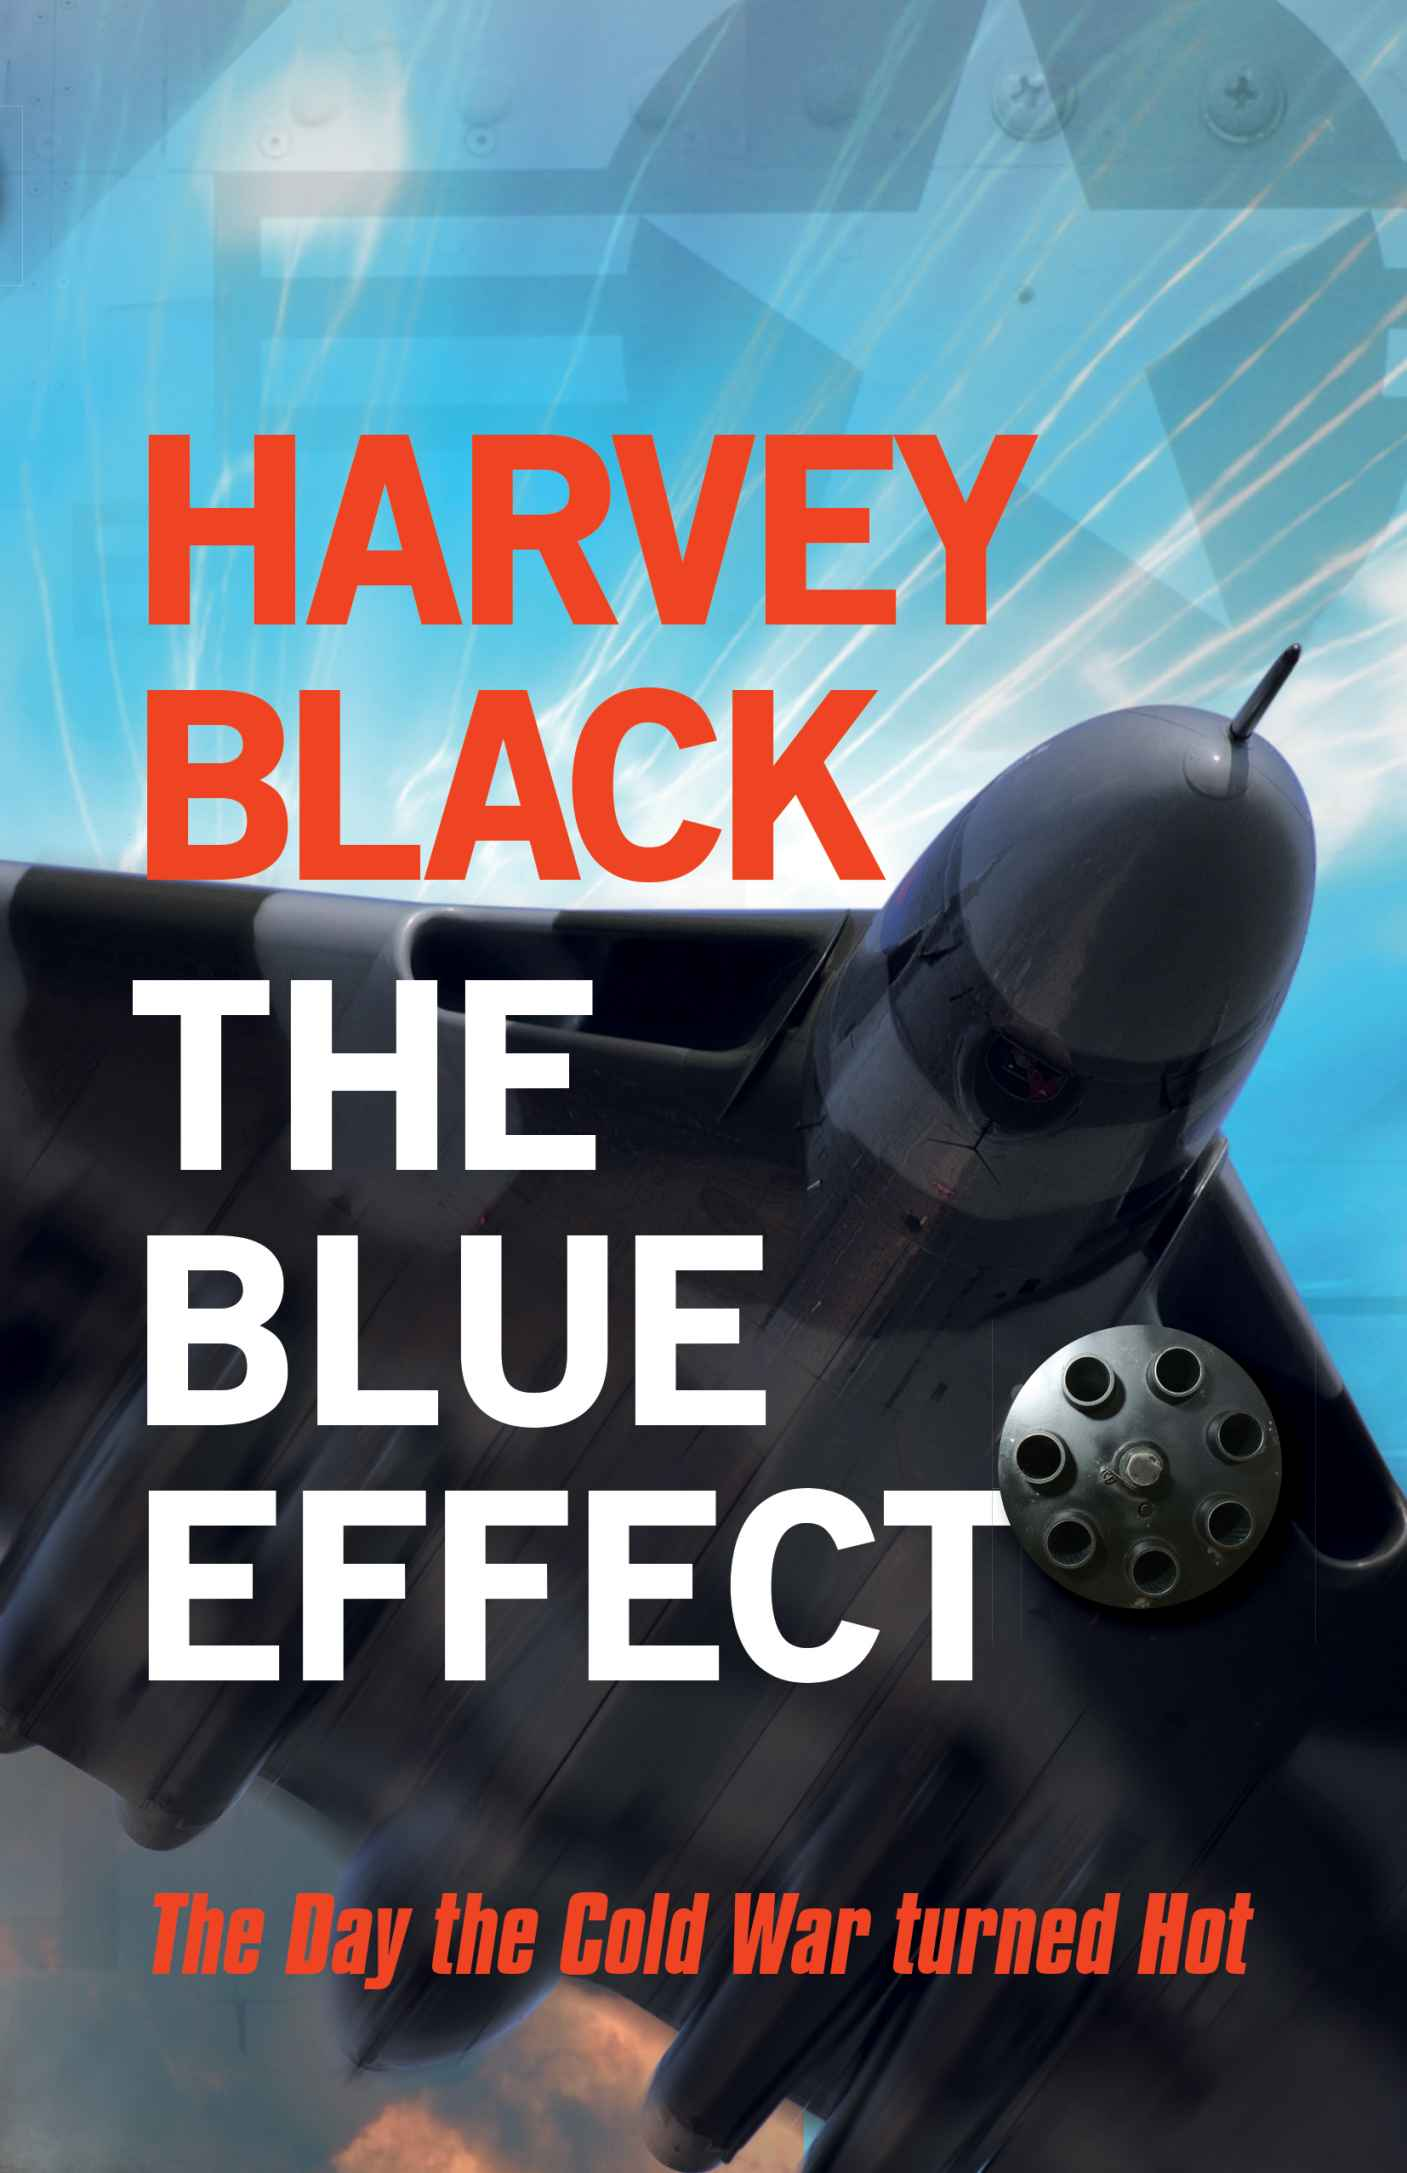 Read Free The Blue Effect Cold War Online Book In